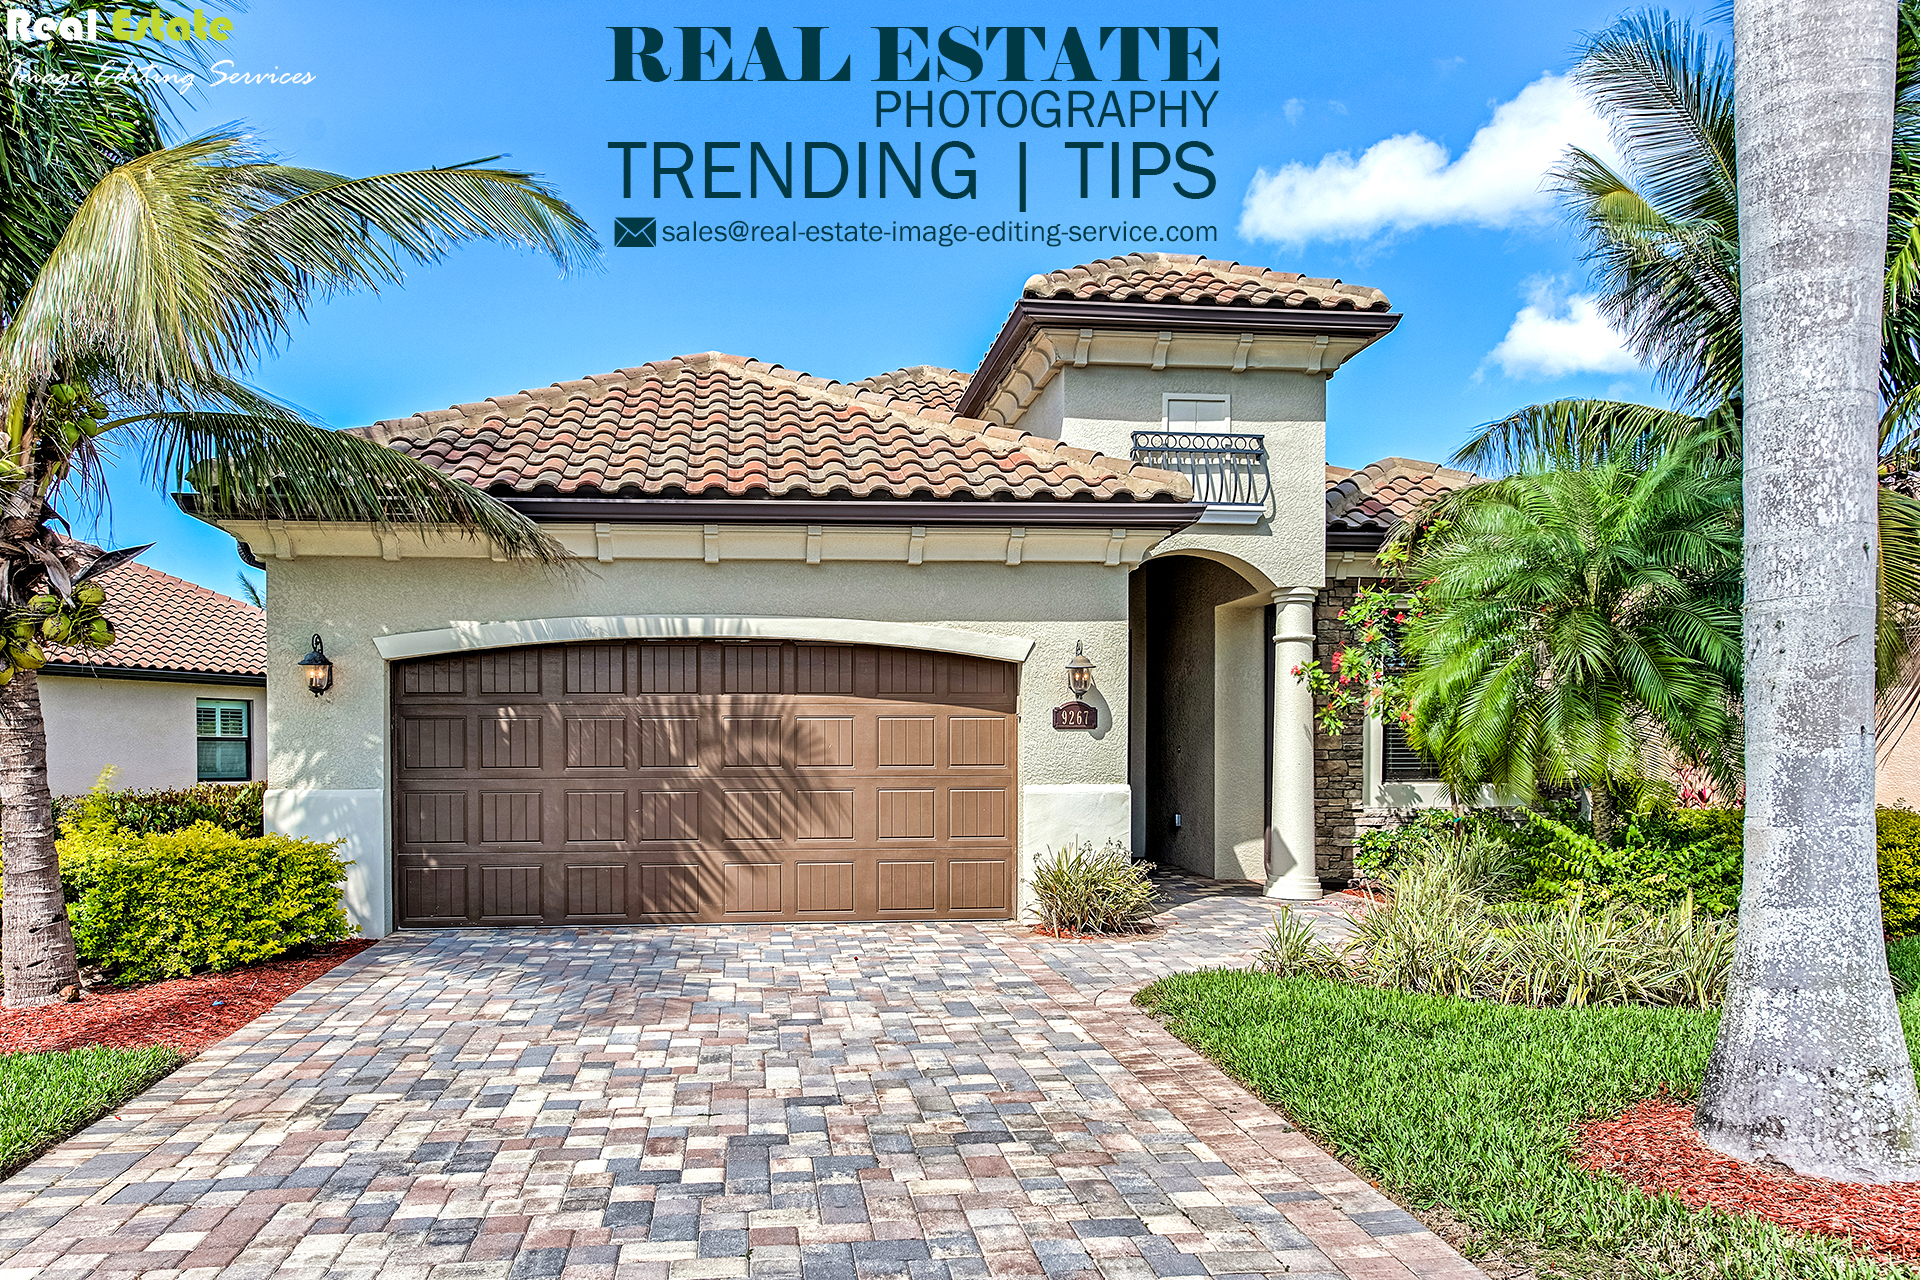 Tips to Make Real Estate Business More Appealing | Photo Editing Services